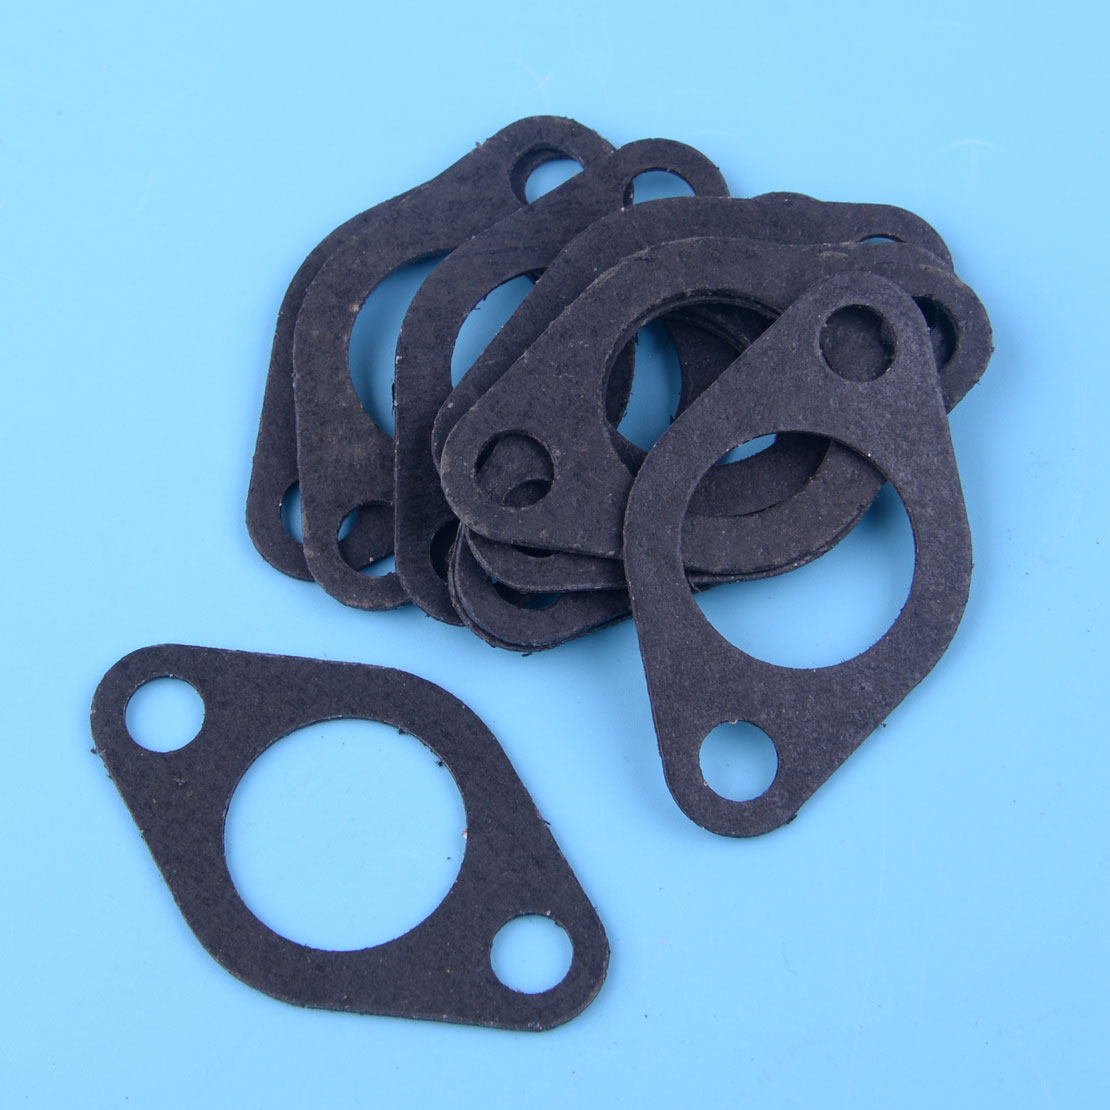 LETAOSK 10Pcs Exhaust Muffler Gasket Fit For Honda GX390 GX340 188F 11HP-13HP Engine Motor Generator Water Pump